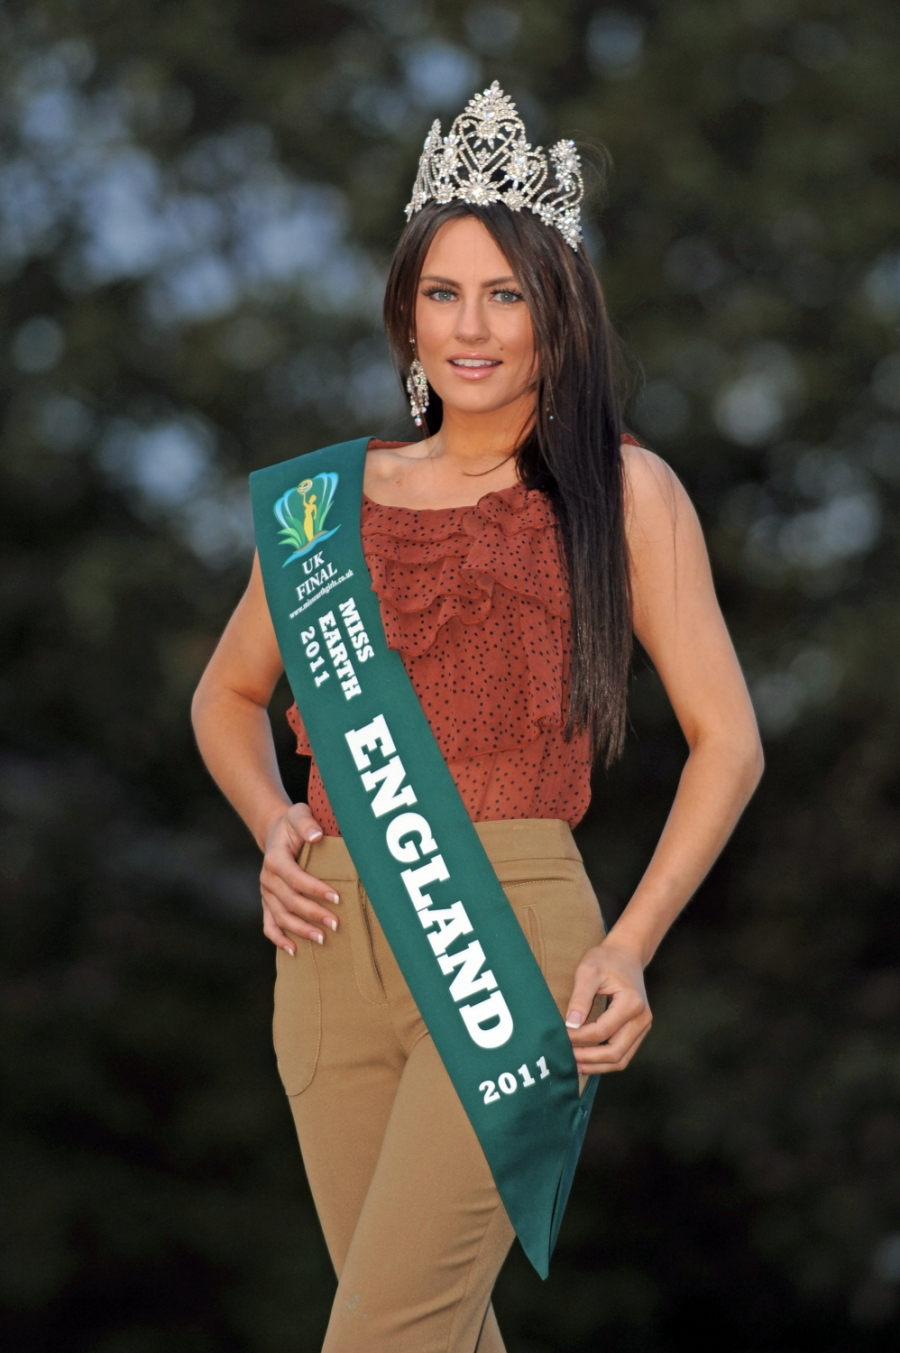 Roxanne Smith,Miss Earth England 2011